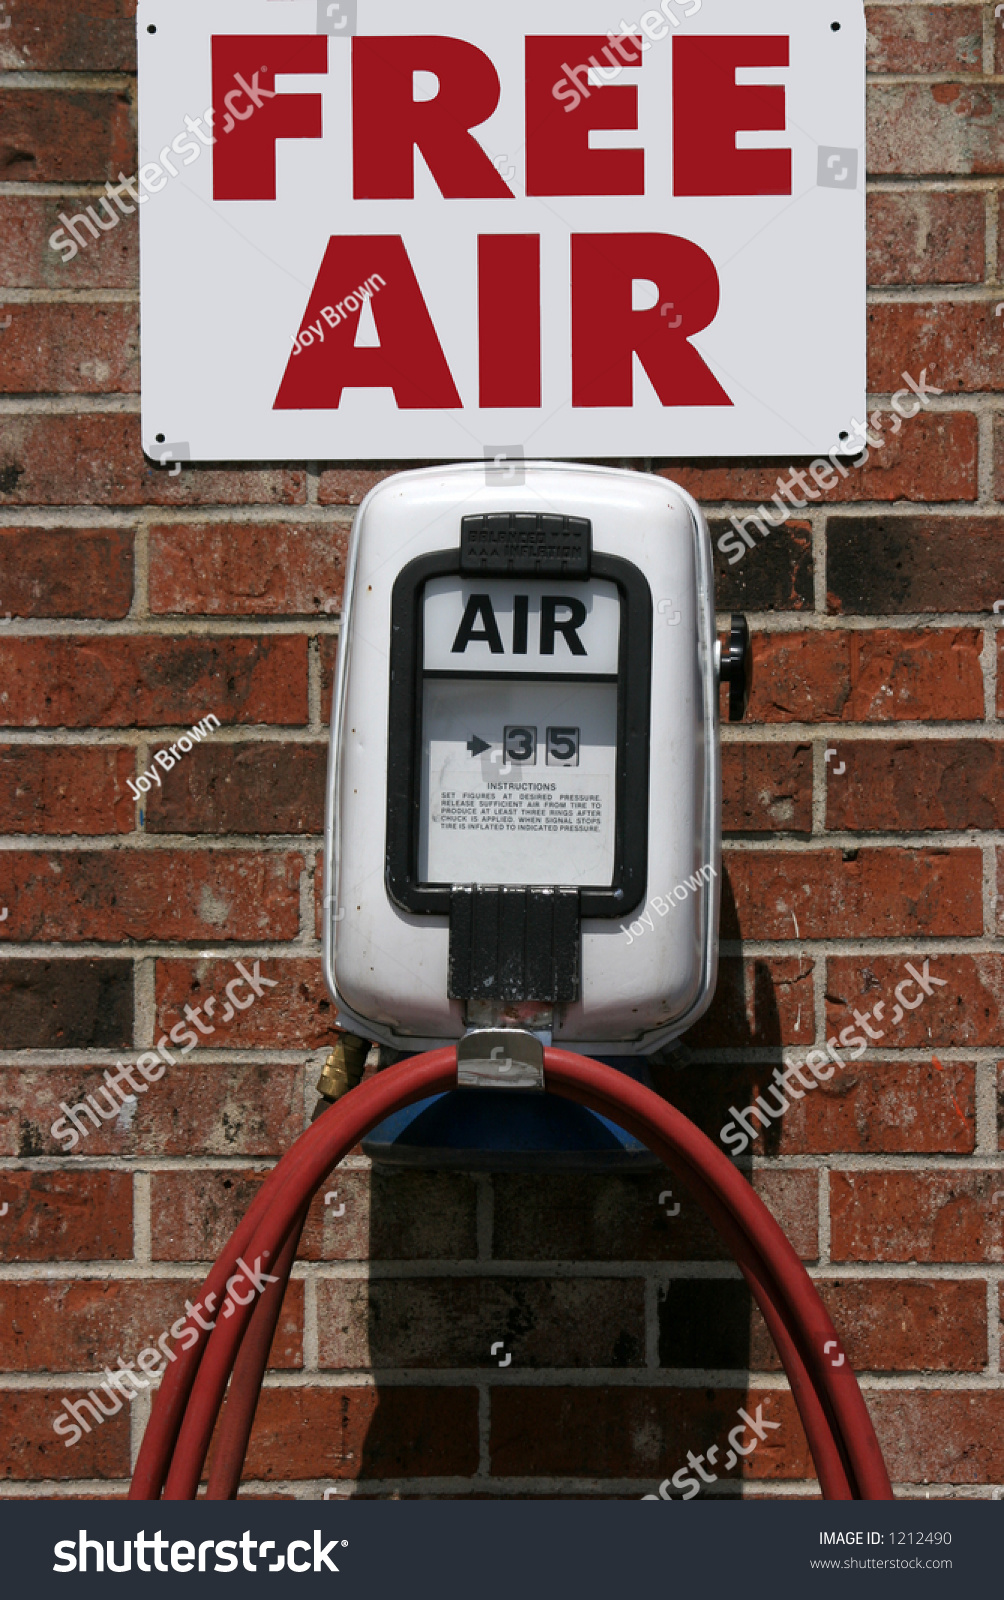 Free Air Sign Over Air Pump Stock Photo Edit Now 1212490